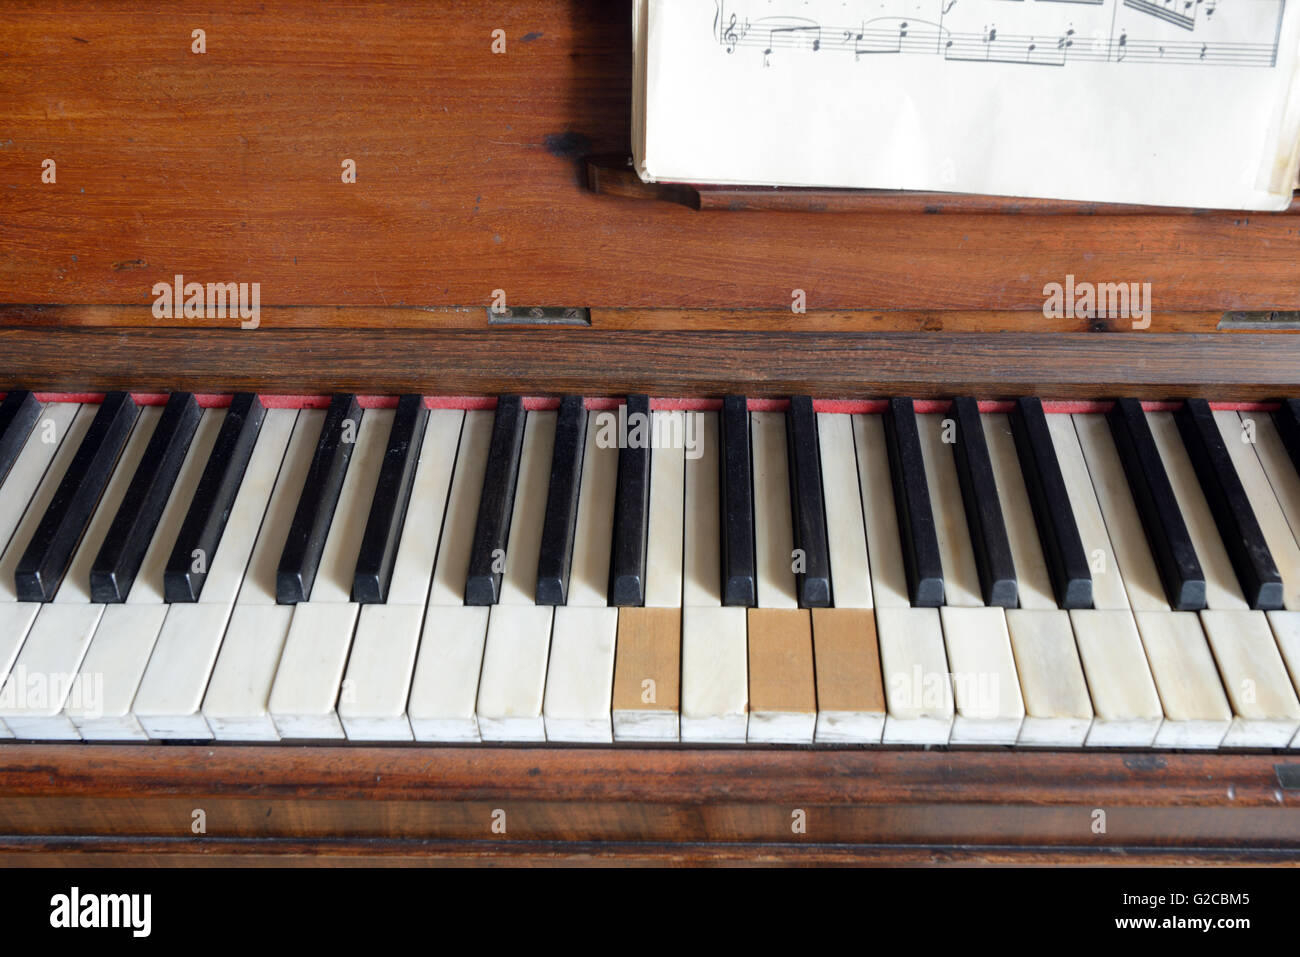 Old Piano with Missing Keys and Sheet Music or Score - Stock Image